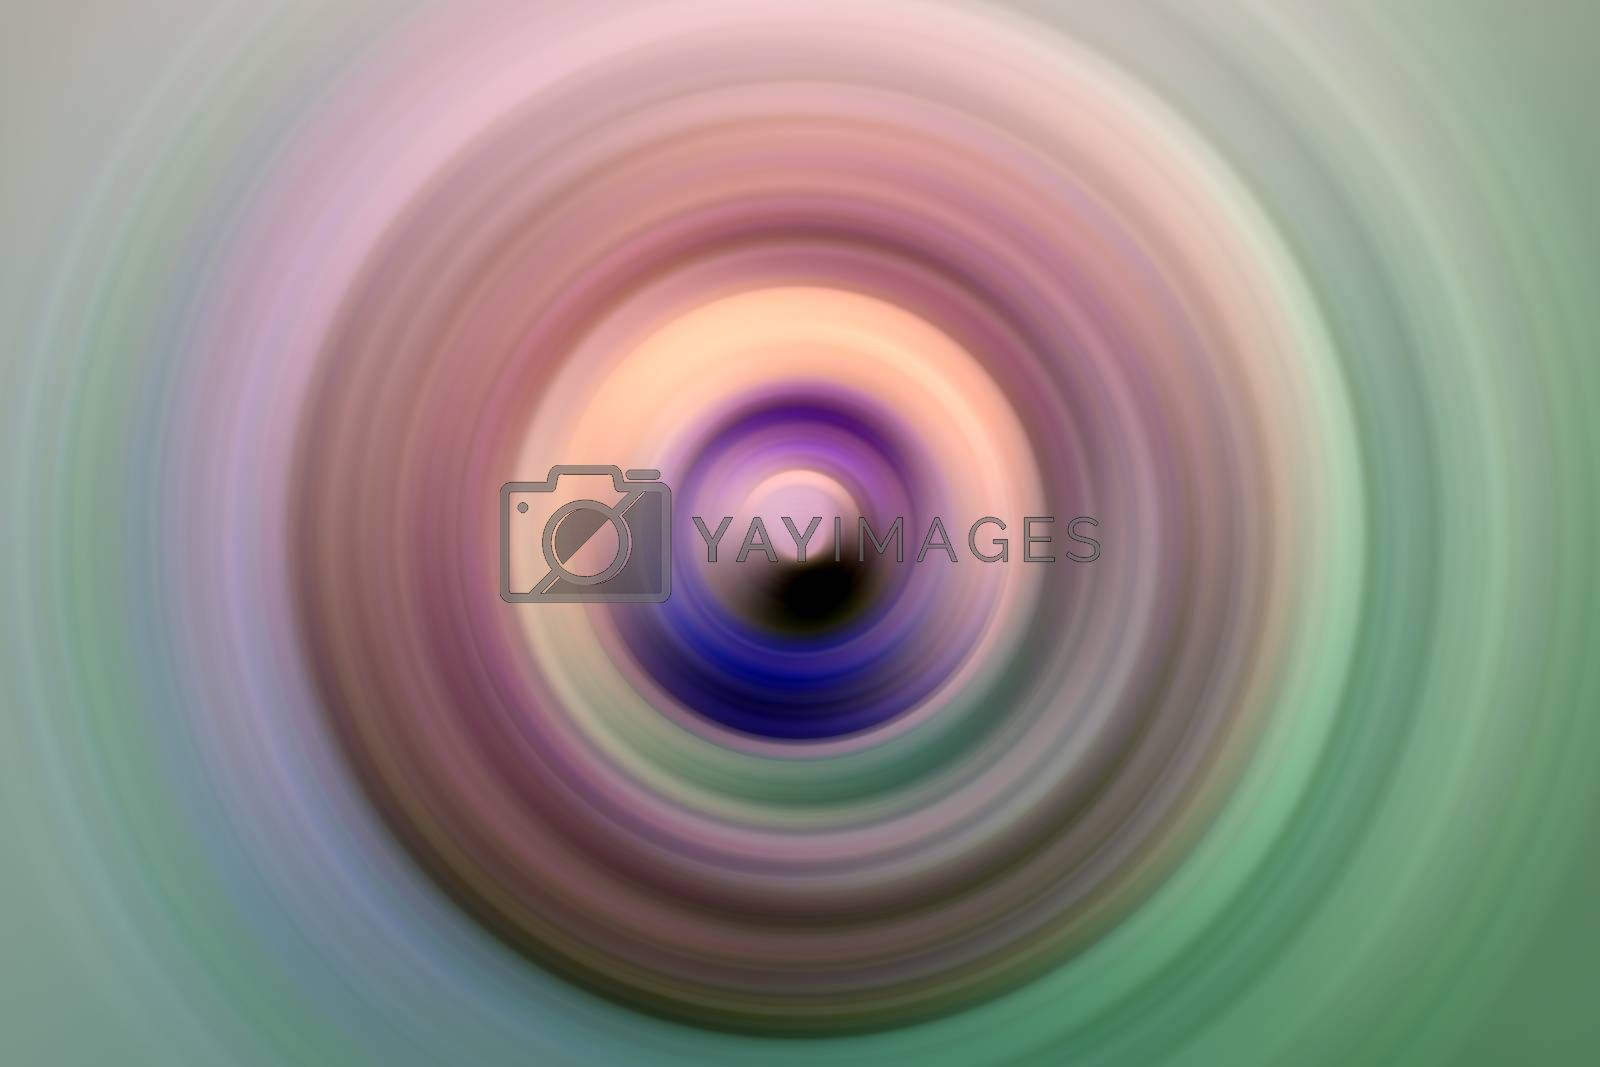 Abstract round background. Circles from the center point. Image of diverging circles. Rotation that creates circles.